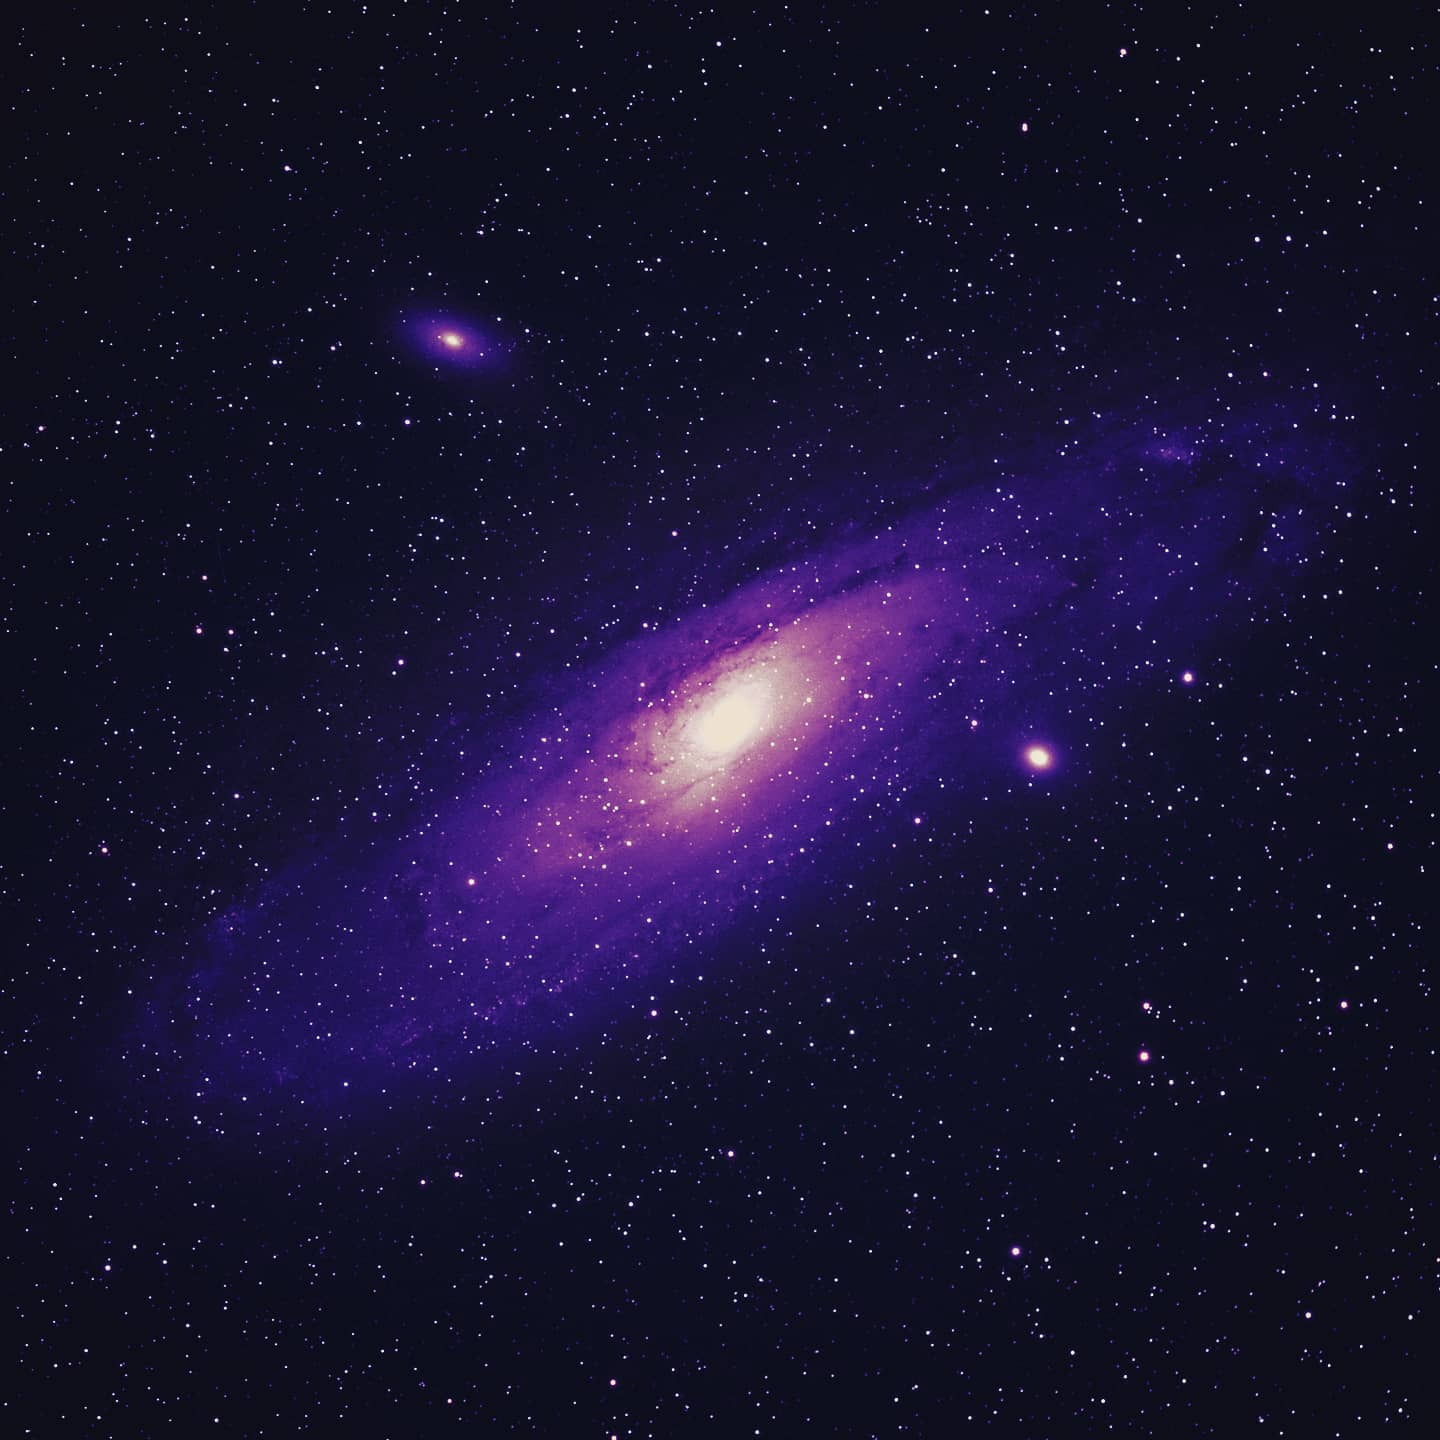 Andromeda (M31) taken last night. Stacked 15x5min exposures at iso800, tracked and using a SkyWatcher Esprit 100 telescope. #andromedagalaxy